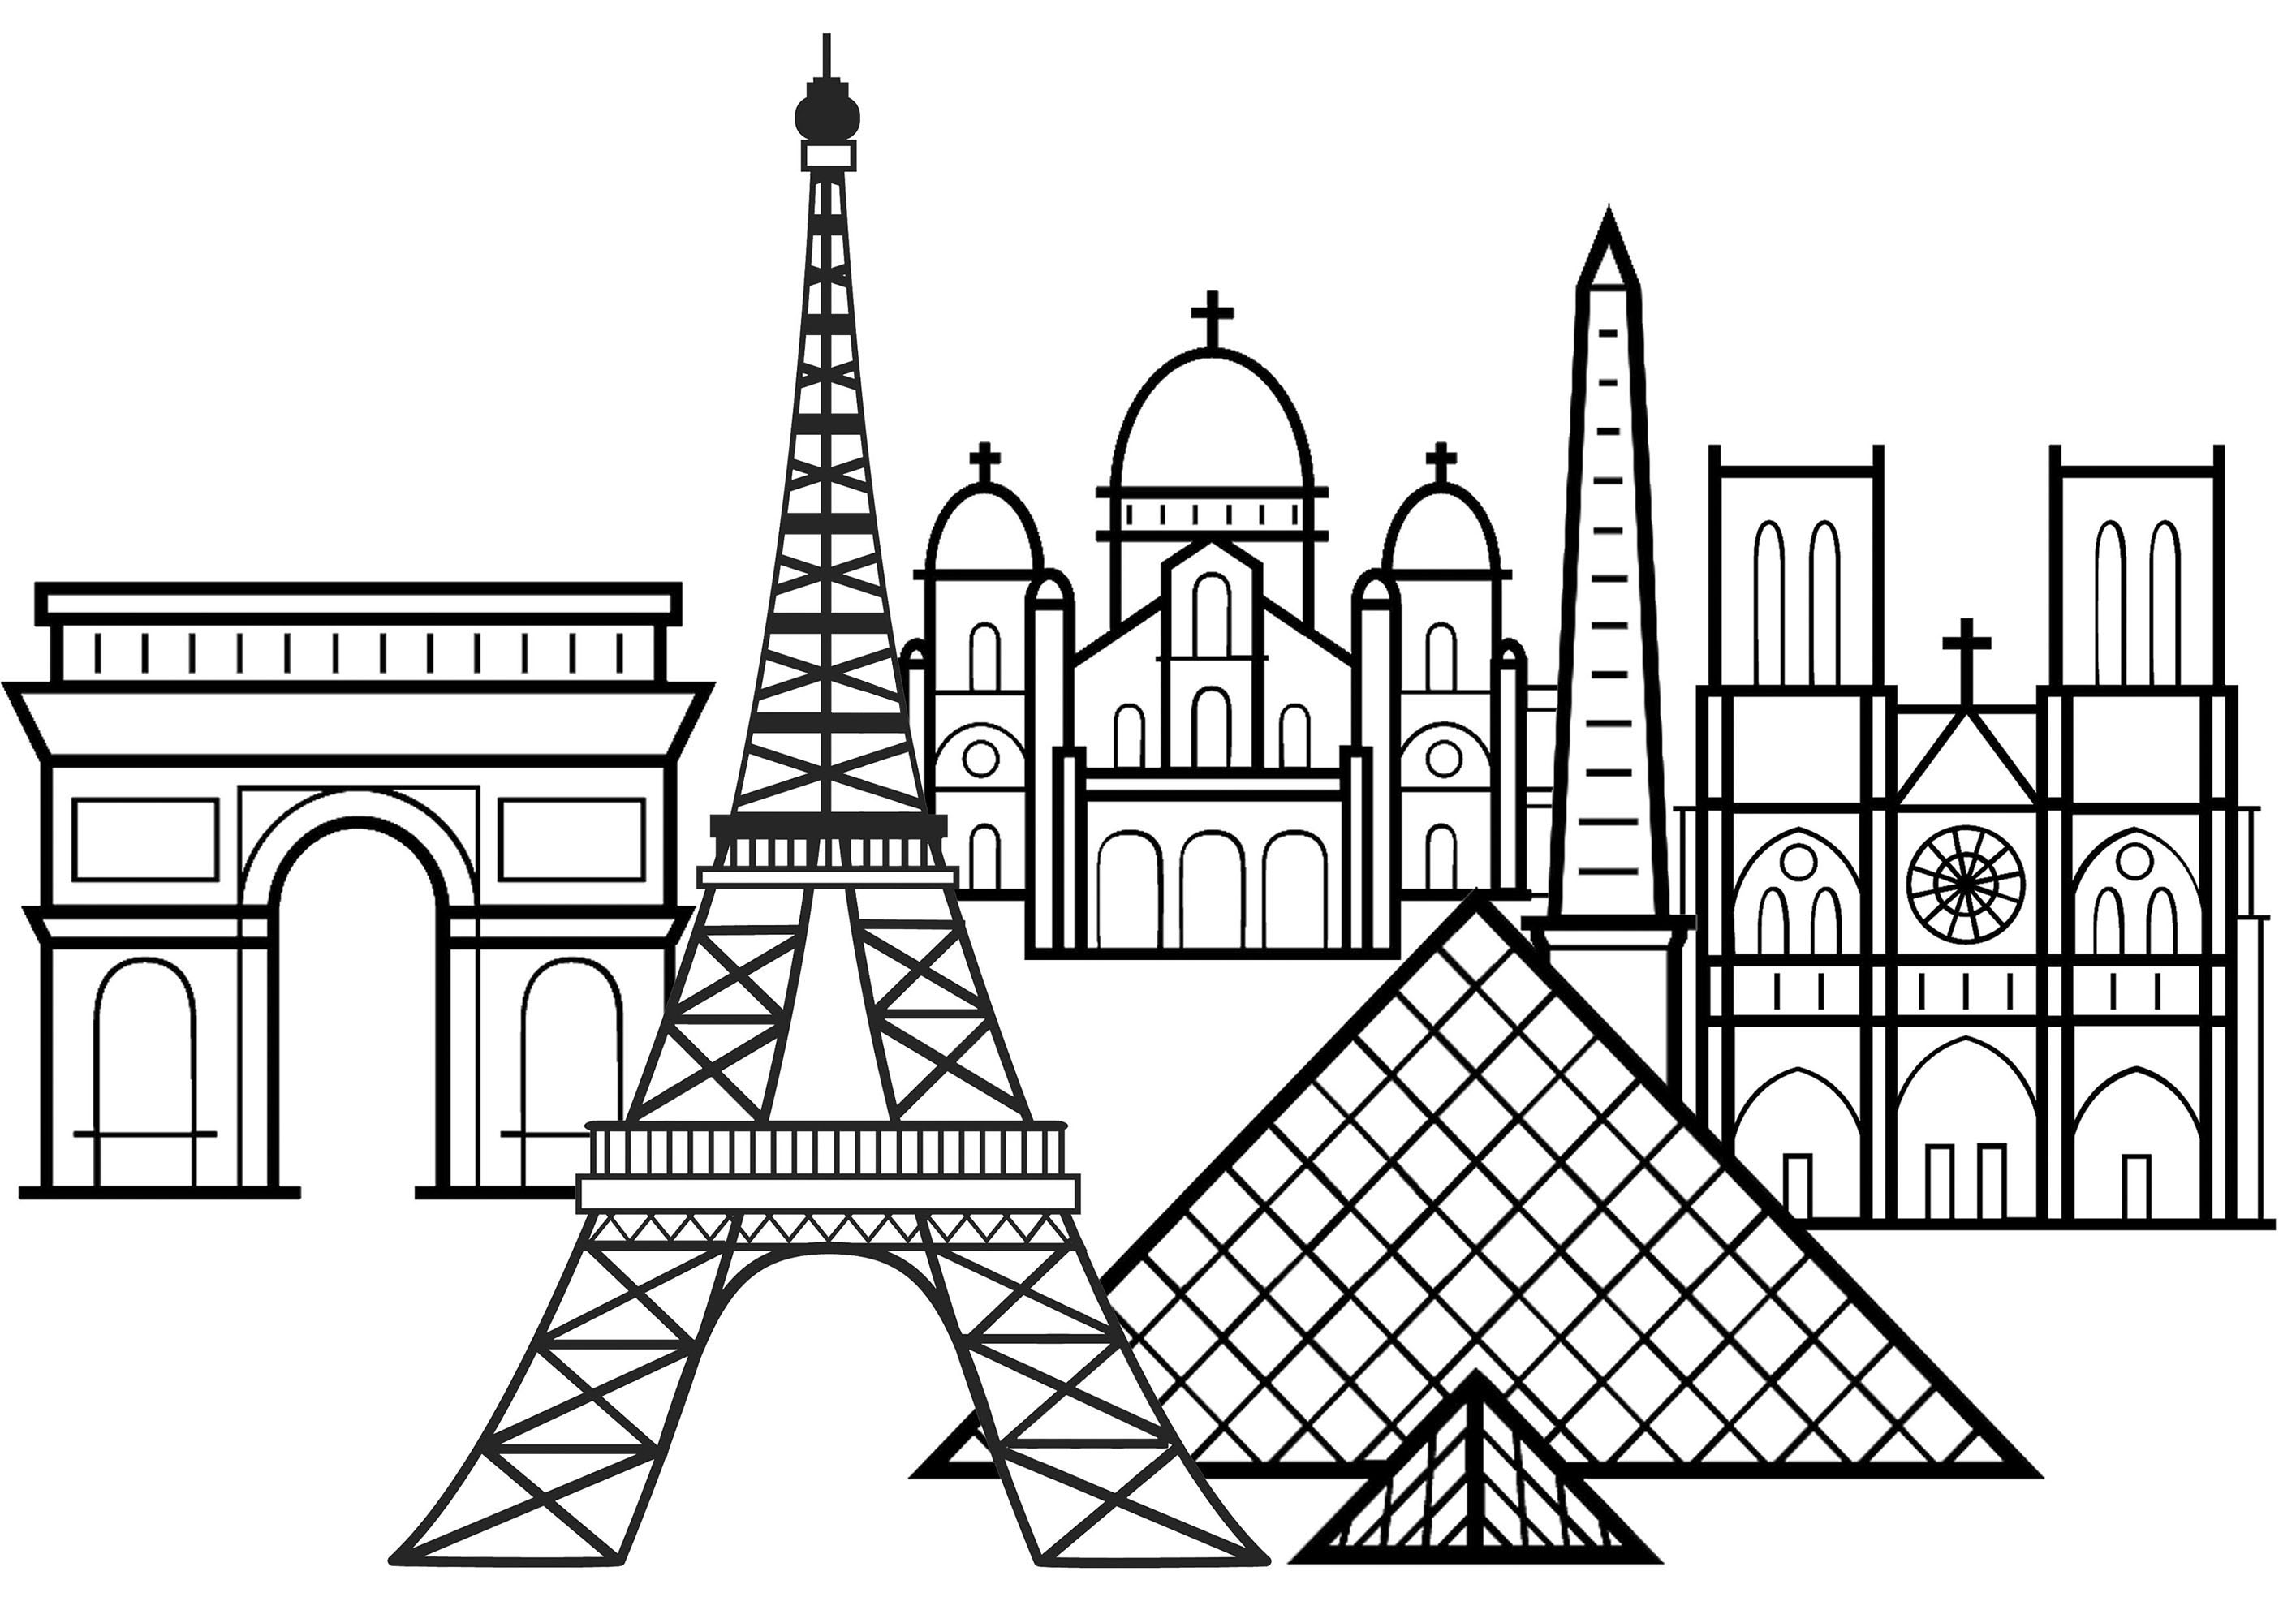 Famous monuments of Paris: Eiffel Tower, Arc de Triomphe, Notre-Dame Cathedral, Louvre Pyramid and Basilica of the Sacred Heart